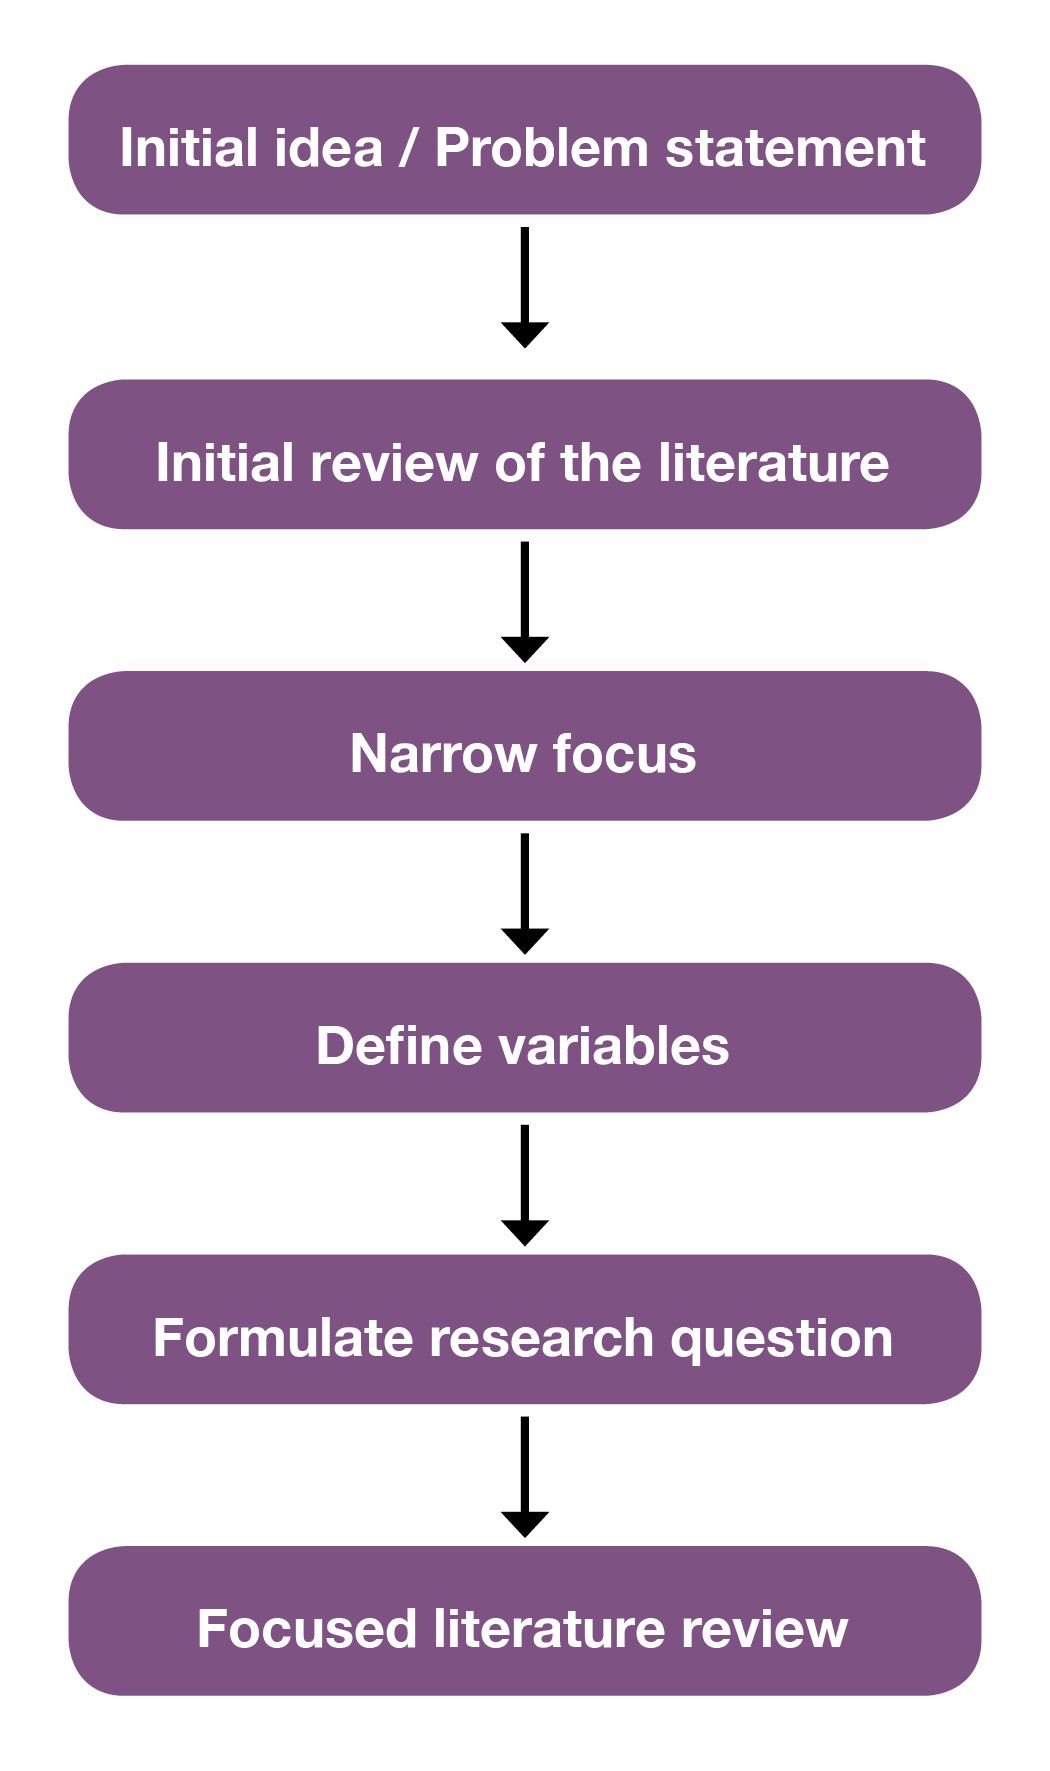 shows six boxes labelled with the basic steps in the literature review process, from the initial idea and development of a problem statement to an initial review of the literature. After narrowing focus and define variables, the research question is formulated and the focused literature review begins.